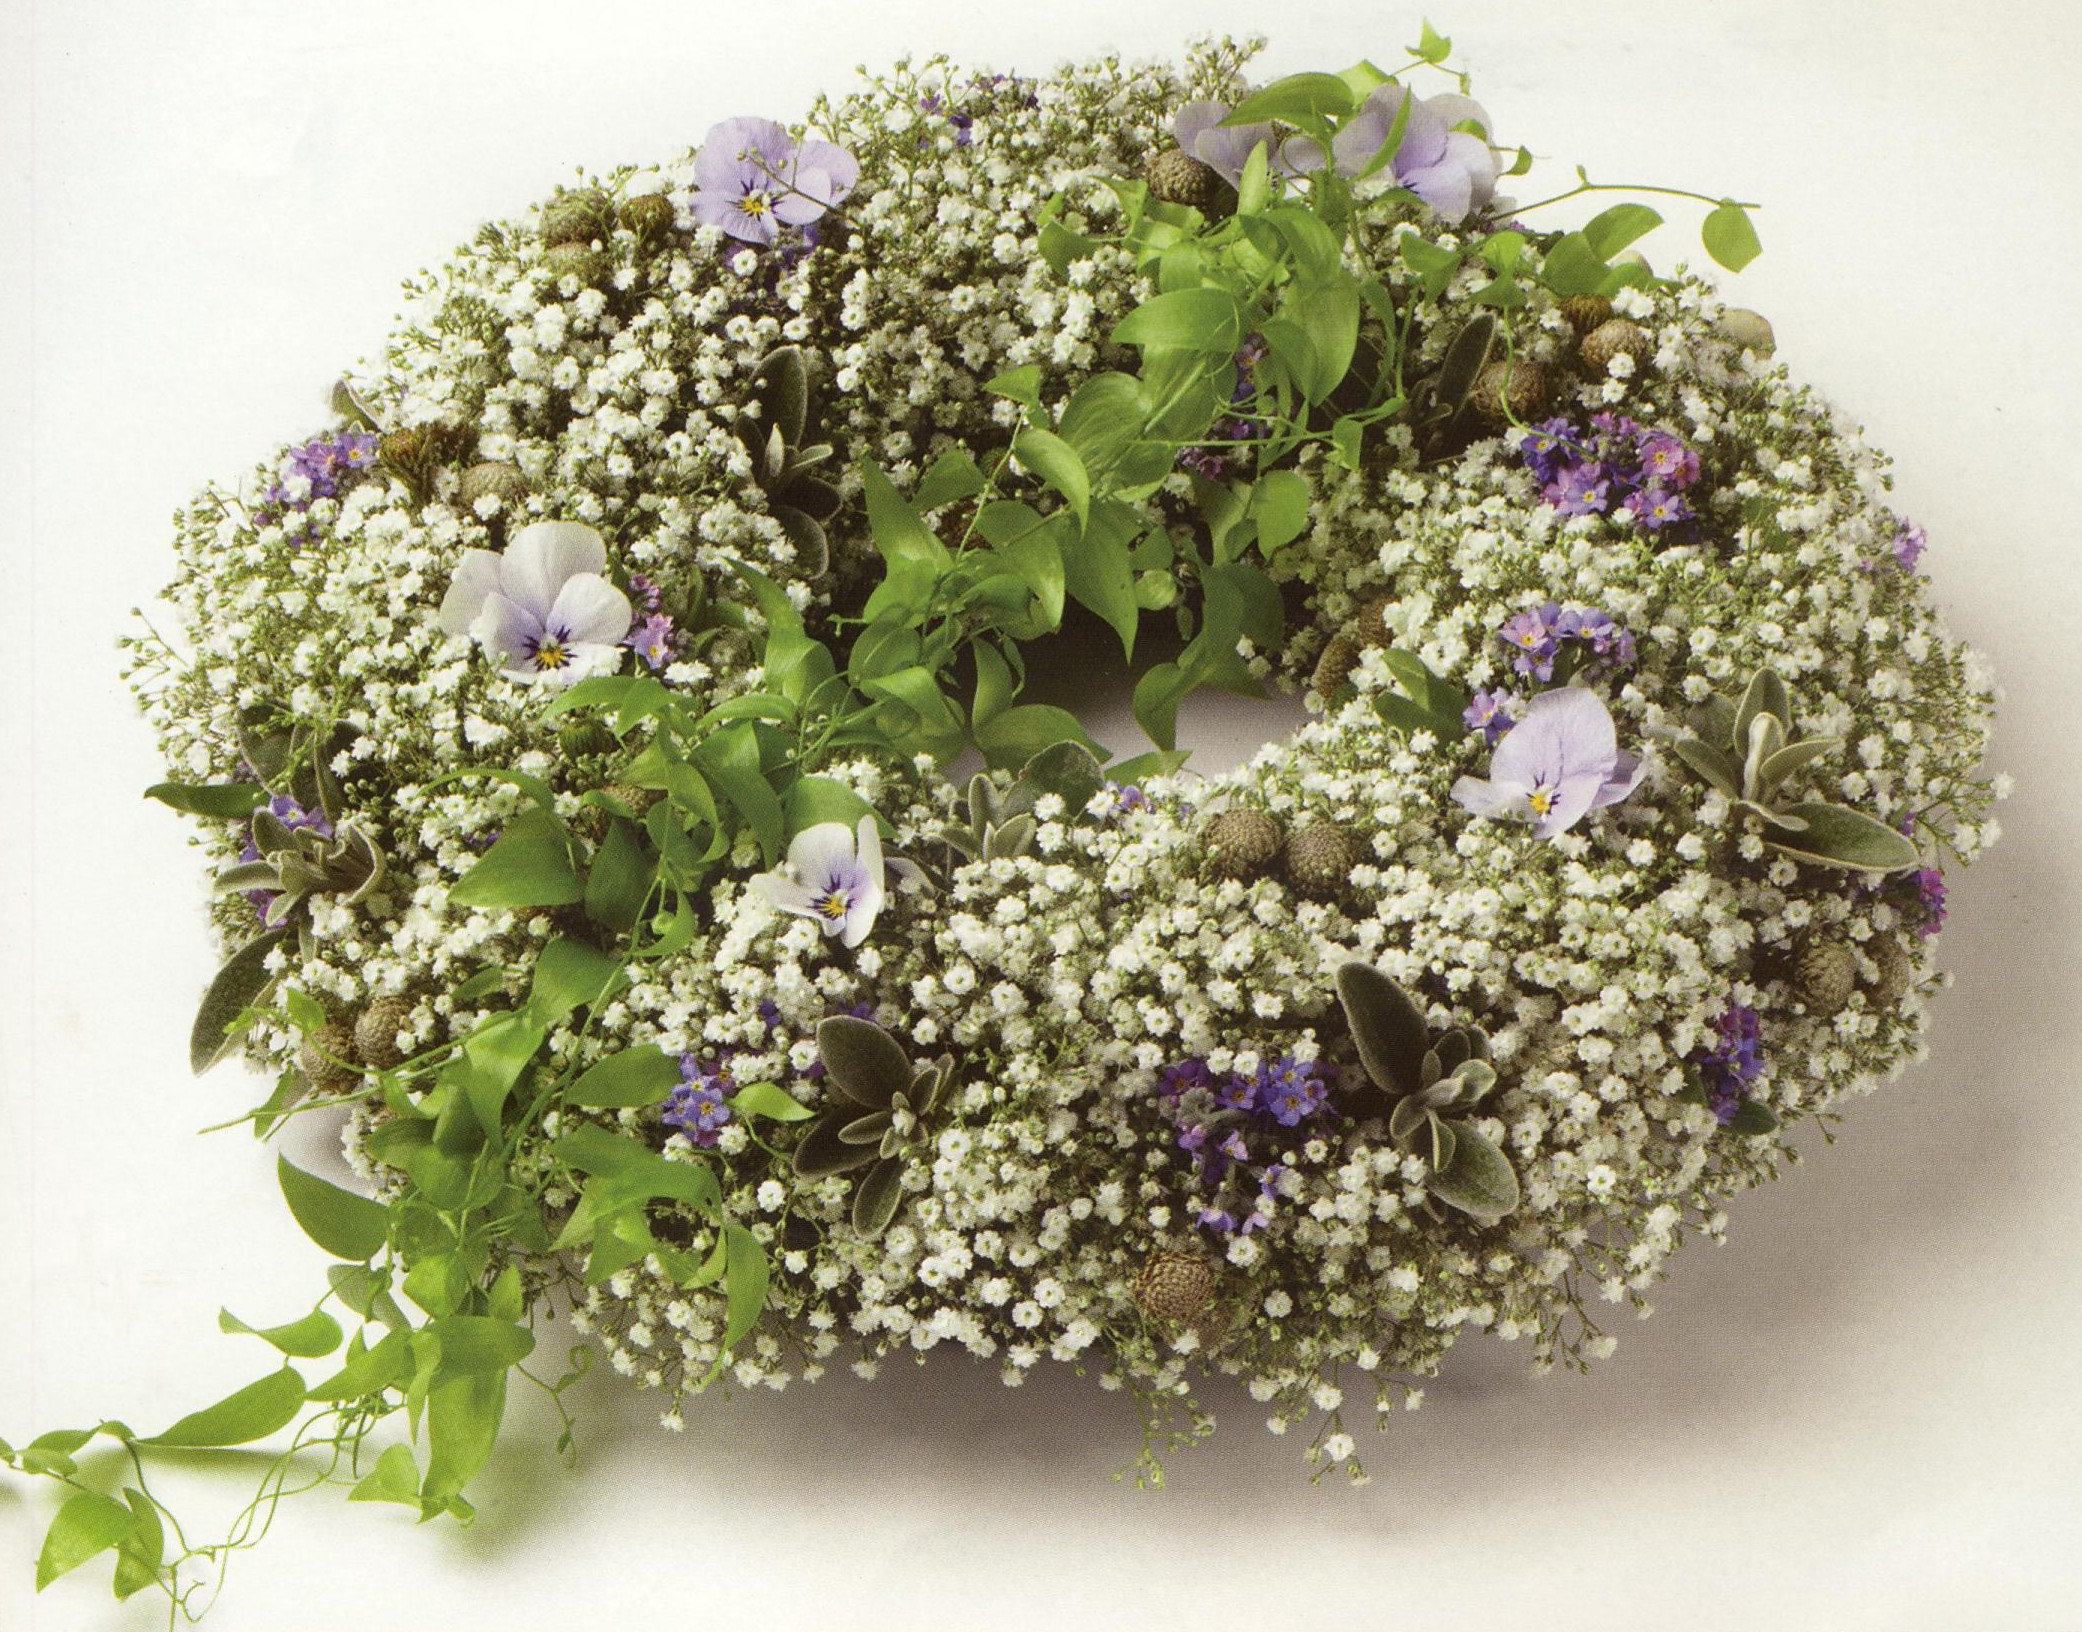 Funeral wreaths hertfordshire funeral florist gypsophila and violets funeral wreath 14 izmirmasajfo